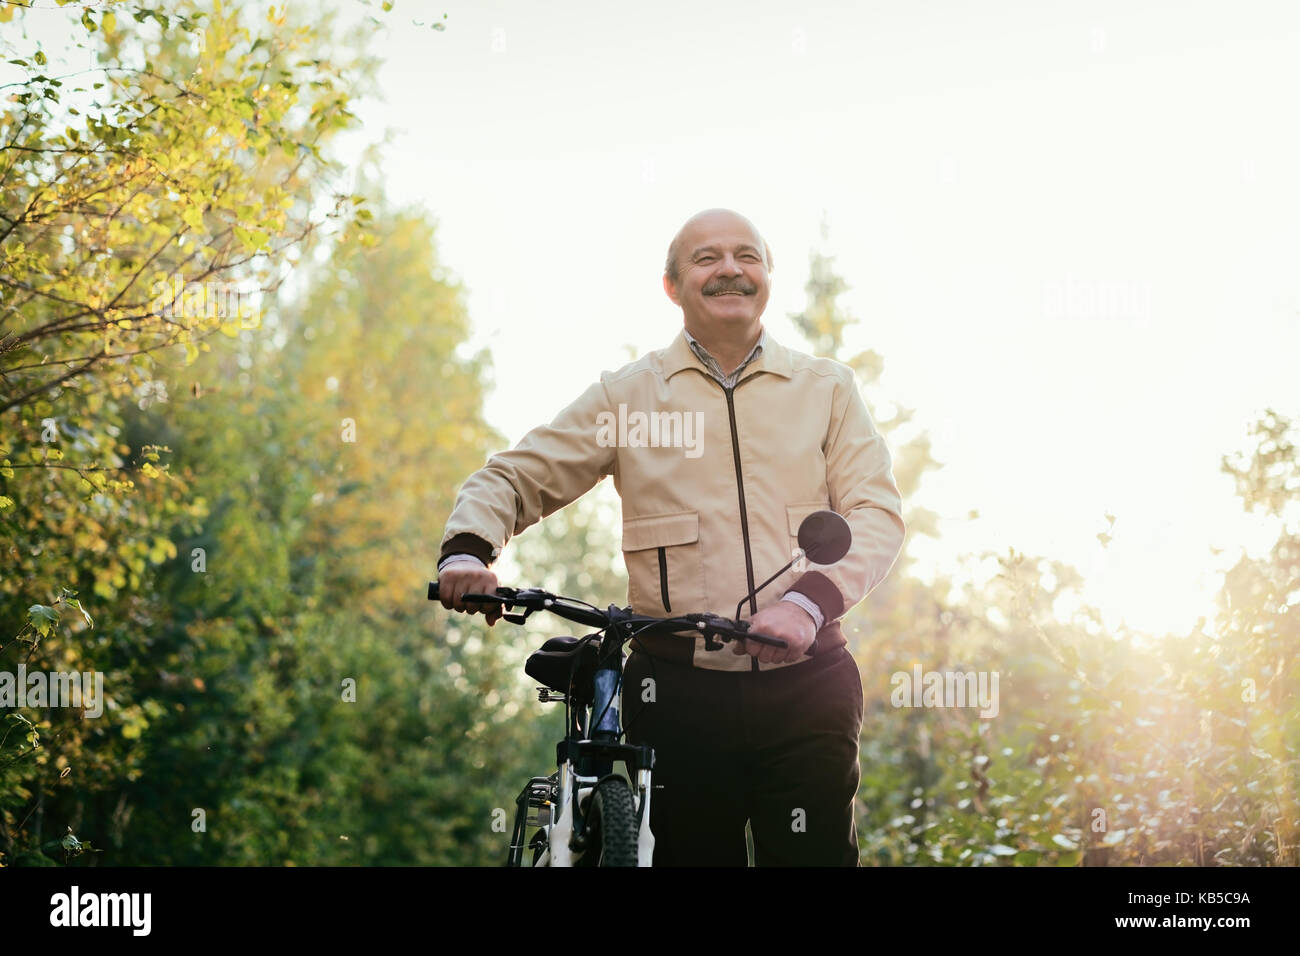 Senior man go for a walk with bike in countryside - Stock Image